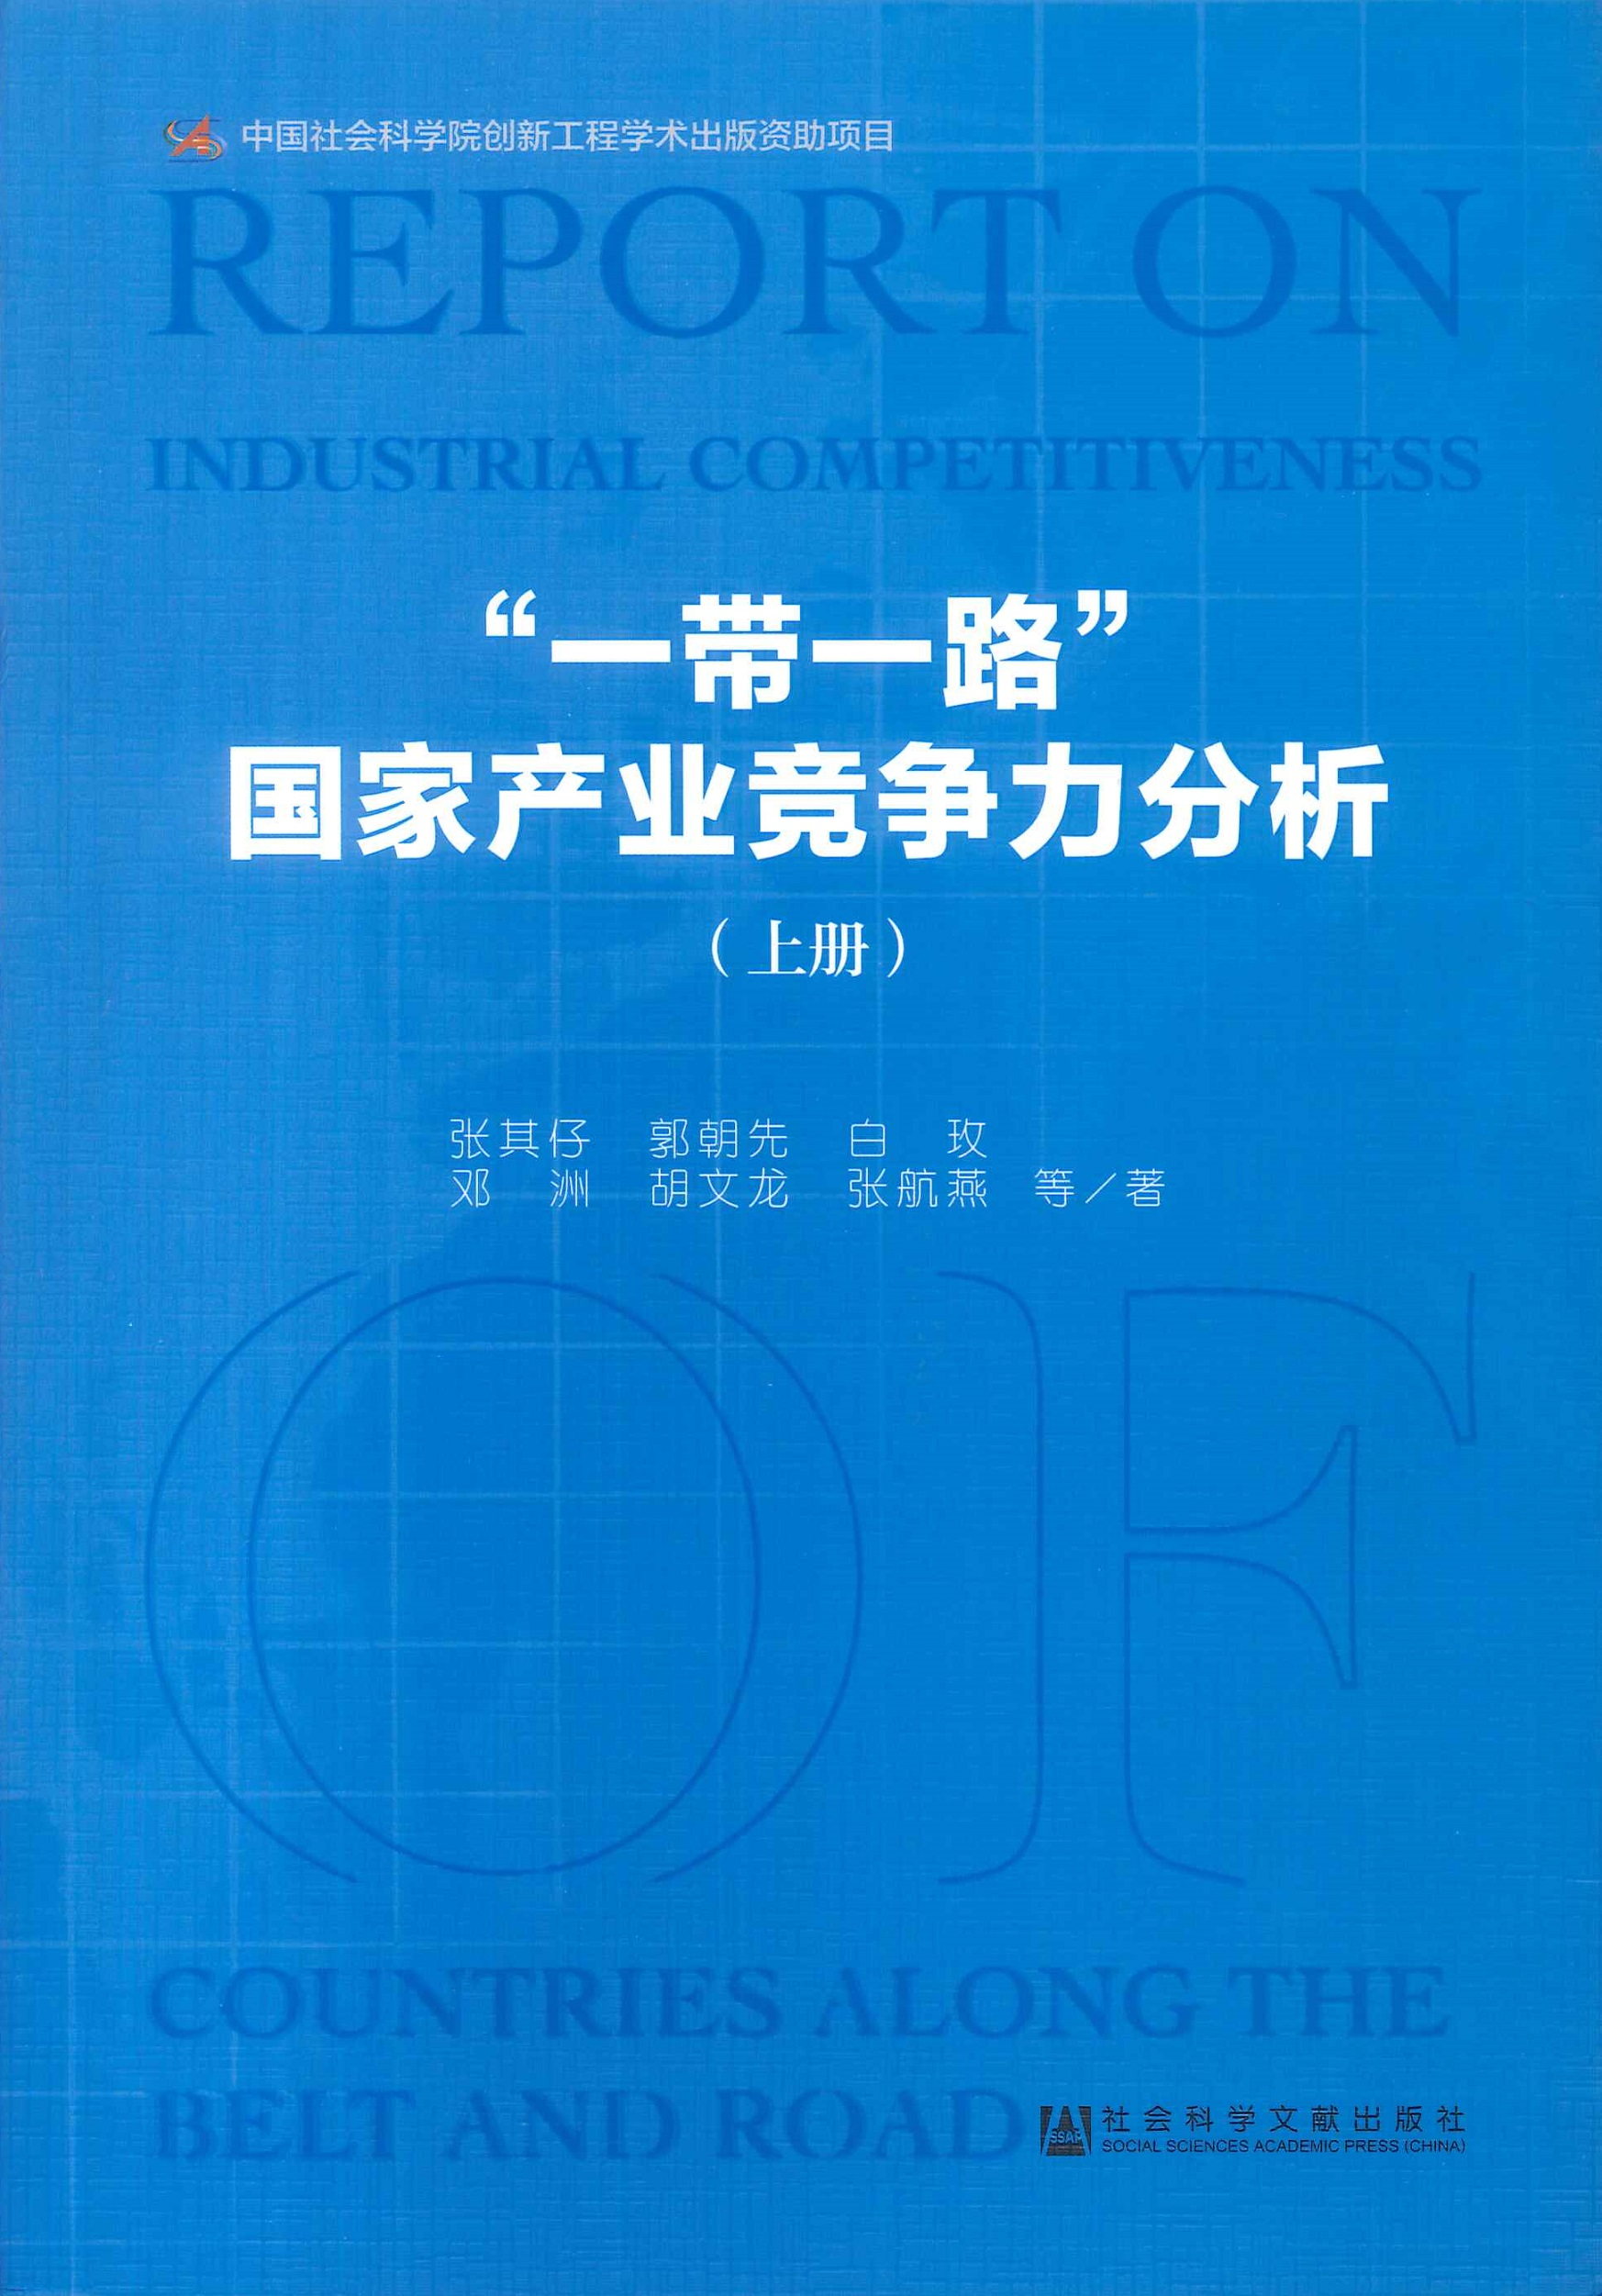 """一带一路""国家产业竞争力分析=Report on industrial competitiveness of countries along the belt and road"